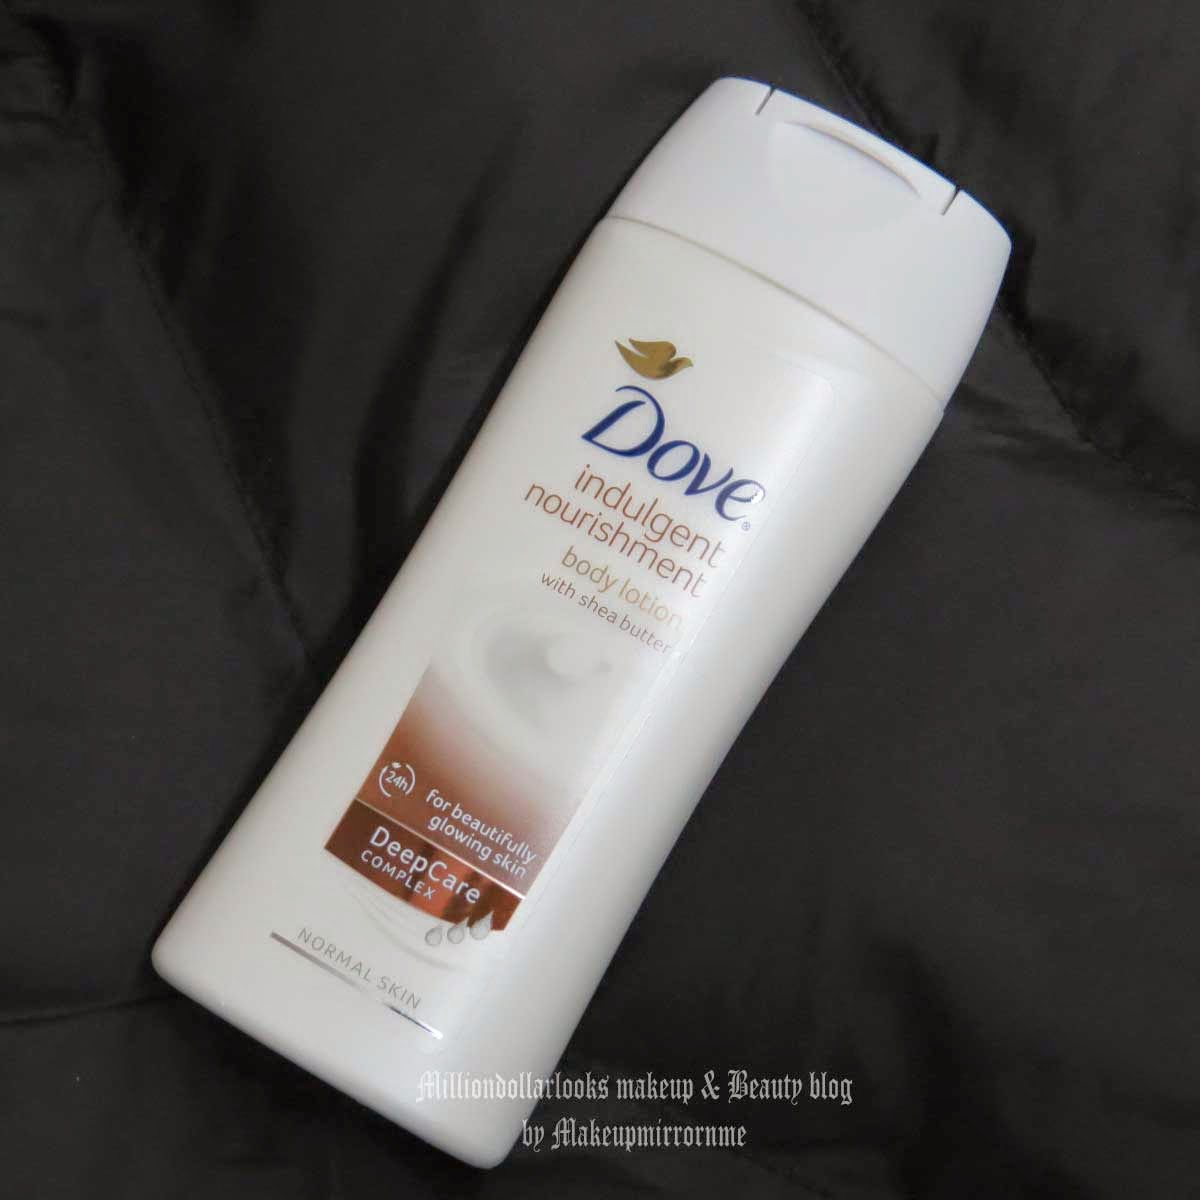 Dove Indulgent Nourishment Body Lotion Review and Pictures, Dove body lotion review, Dove products review India, Indian beauty blogger, Indian beauty blogs, Indian makeup and beauty blog, Dove body lotion, Best affordable body lotions available in India, Best body lotions for dry skin, Extra dry skin, Normal dry skin, Top beauty bogs in India